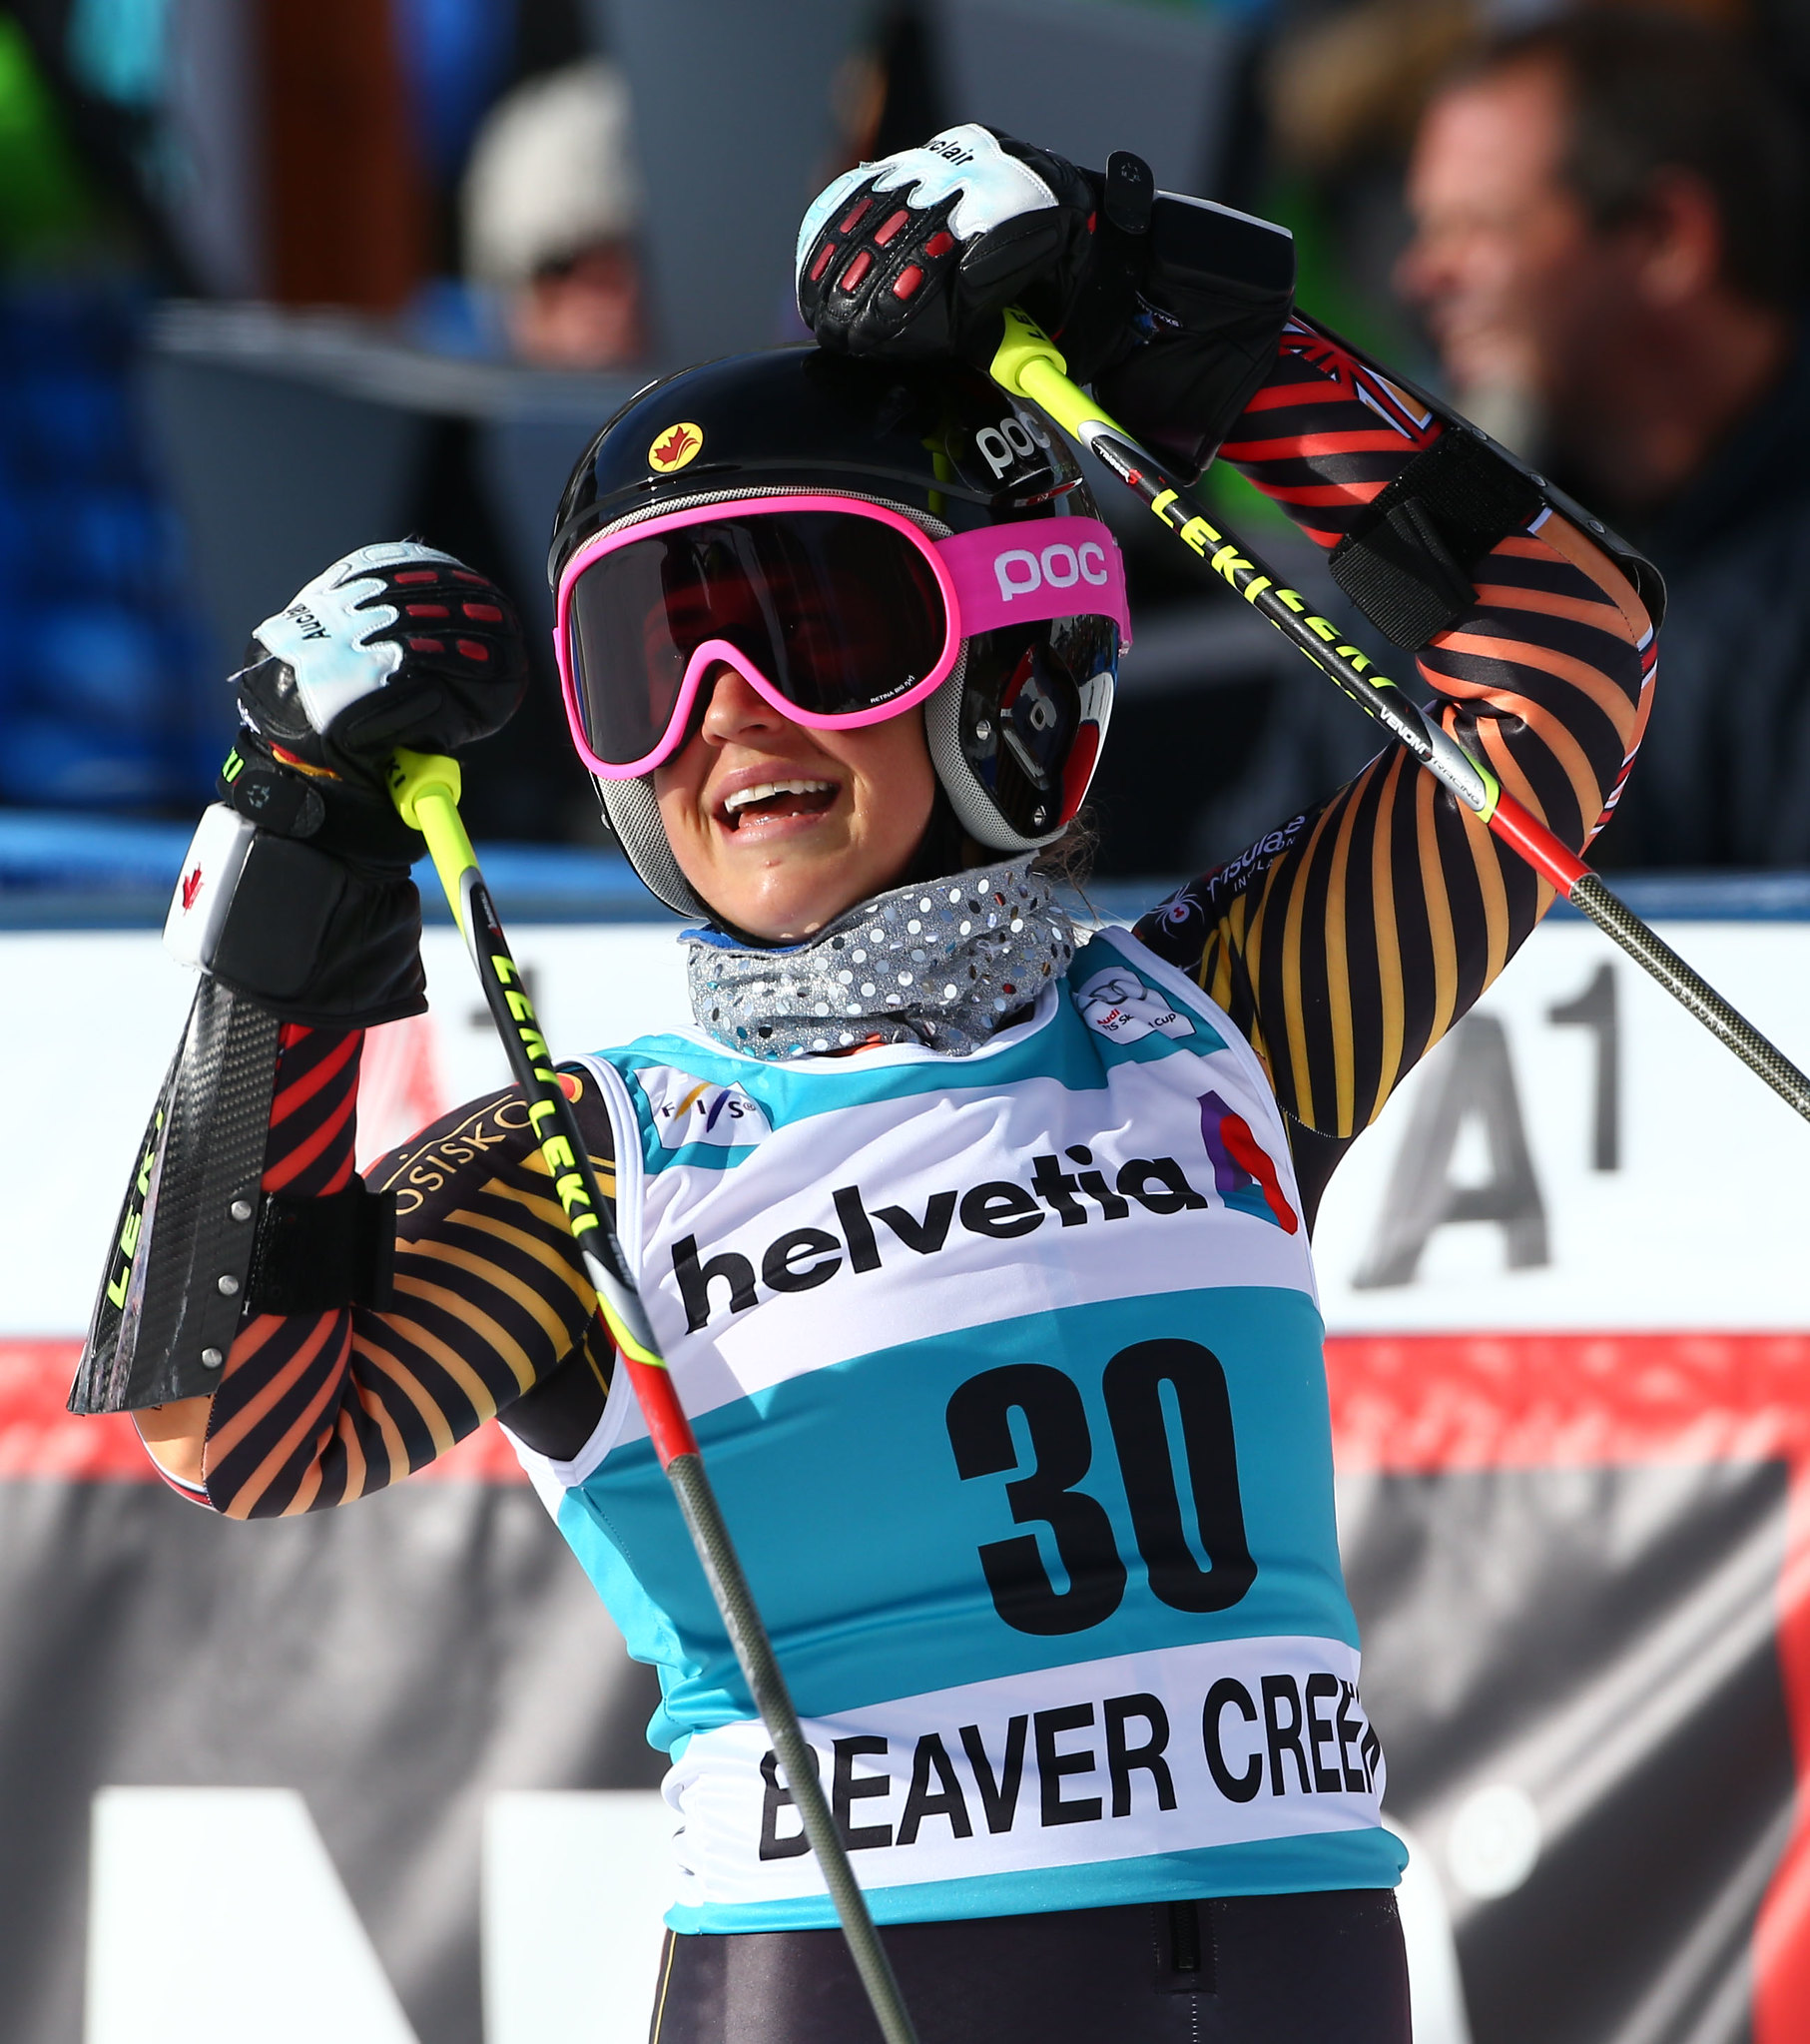 Marie-Pier Préfontaine celebrates a 9th place finish in the giant slalom at the FIS Alpine World Cup in Beavercreek, U.S.